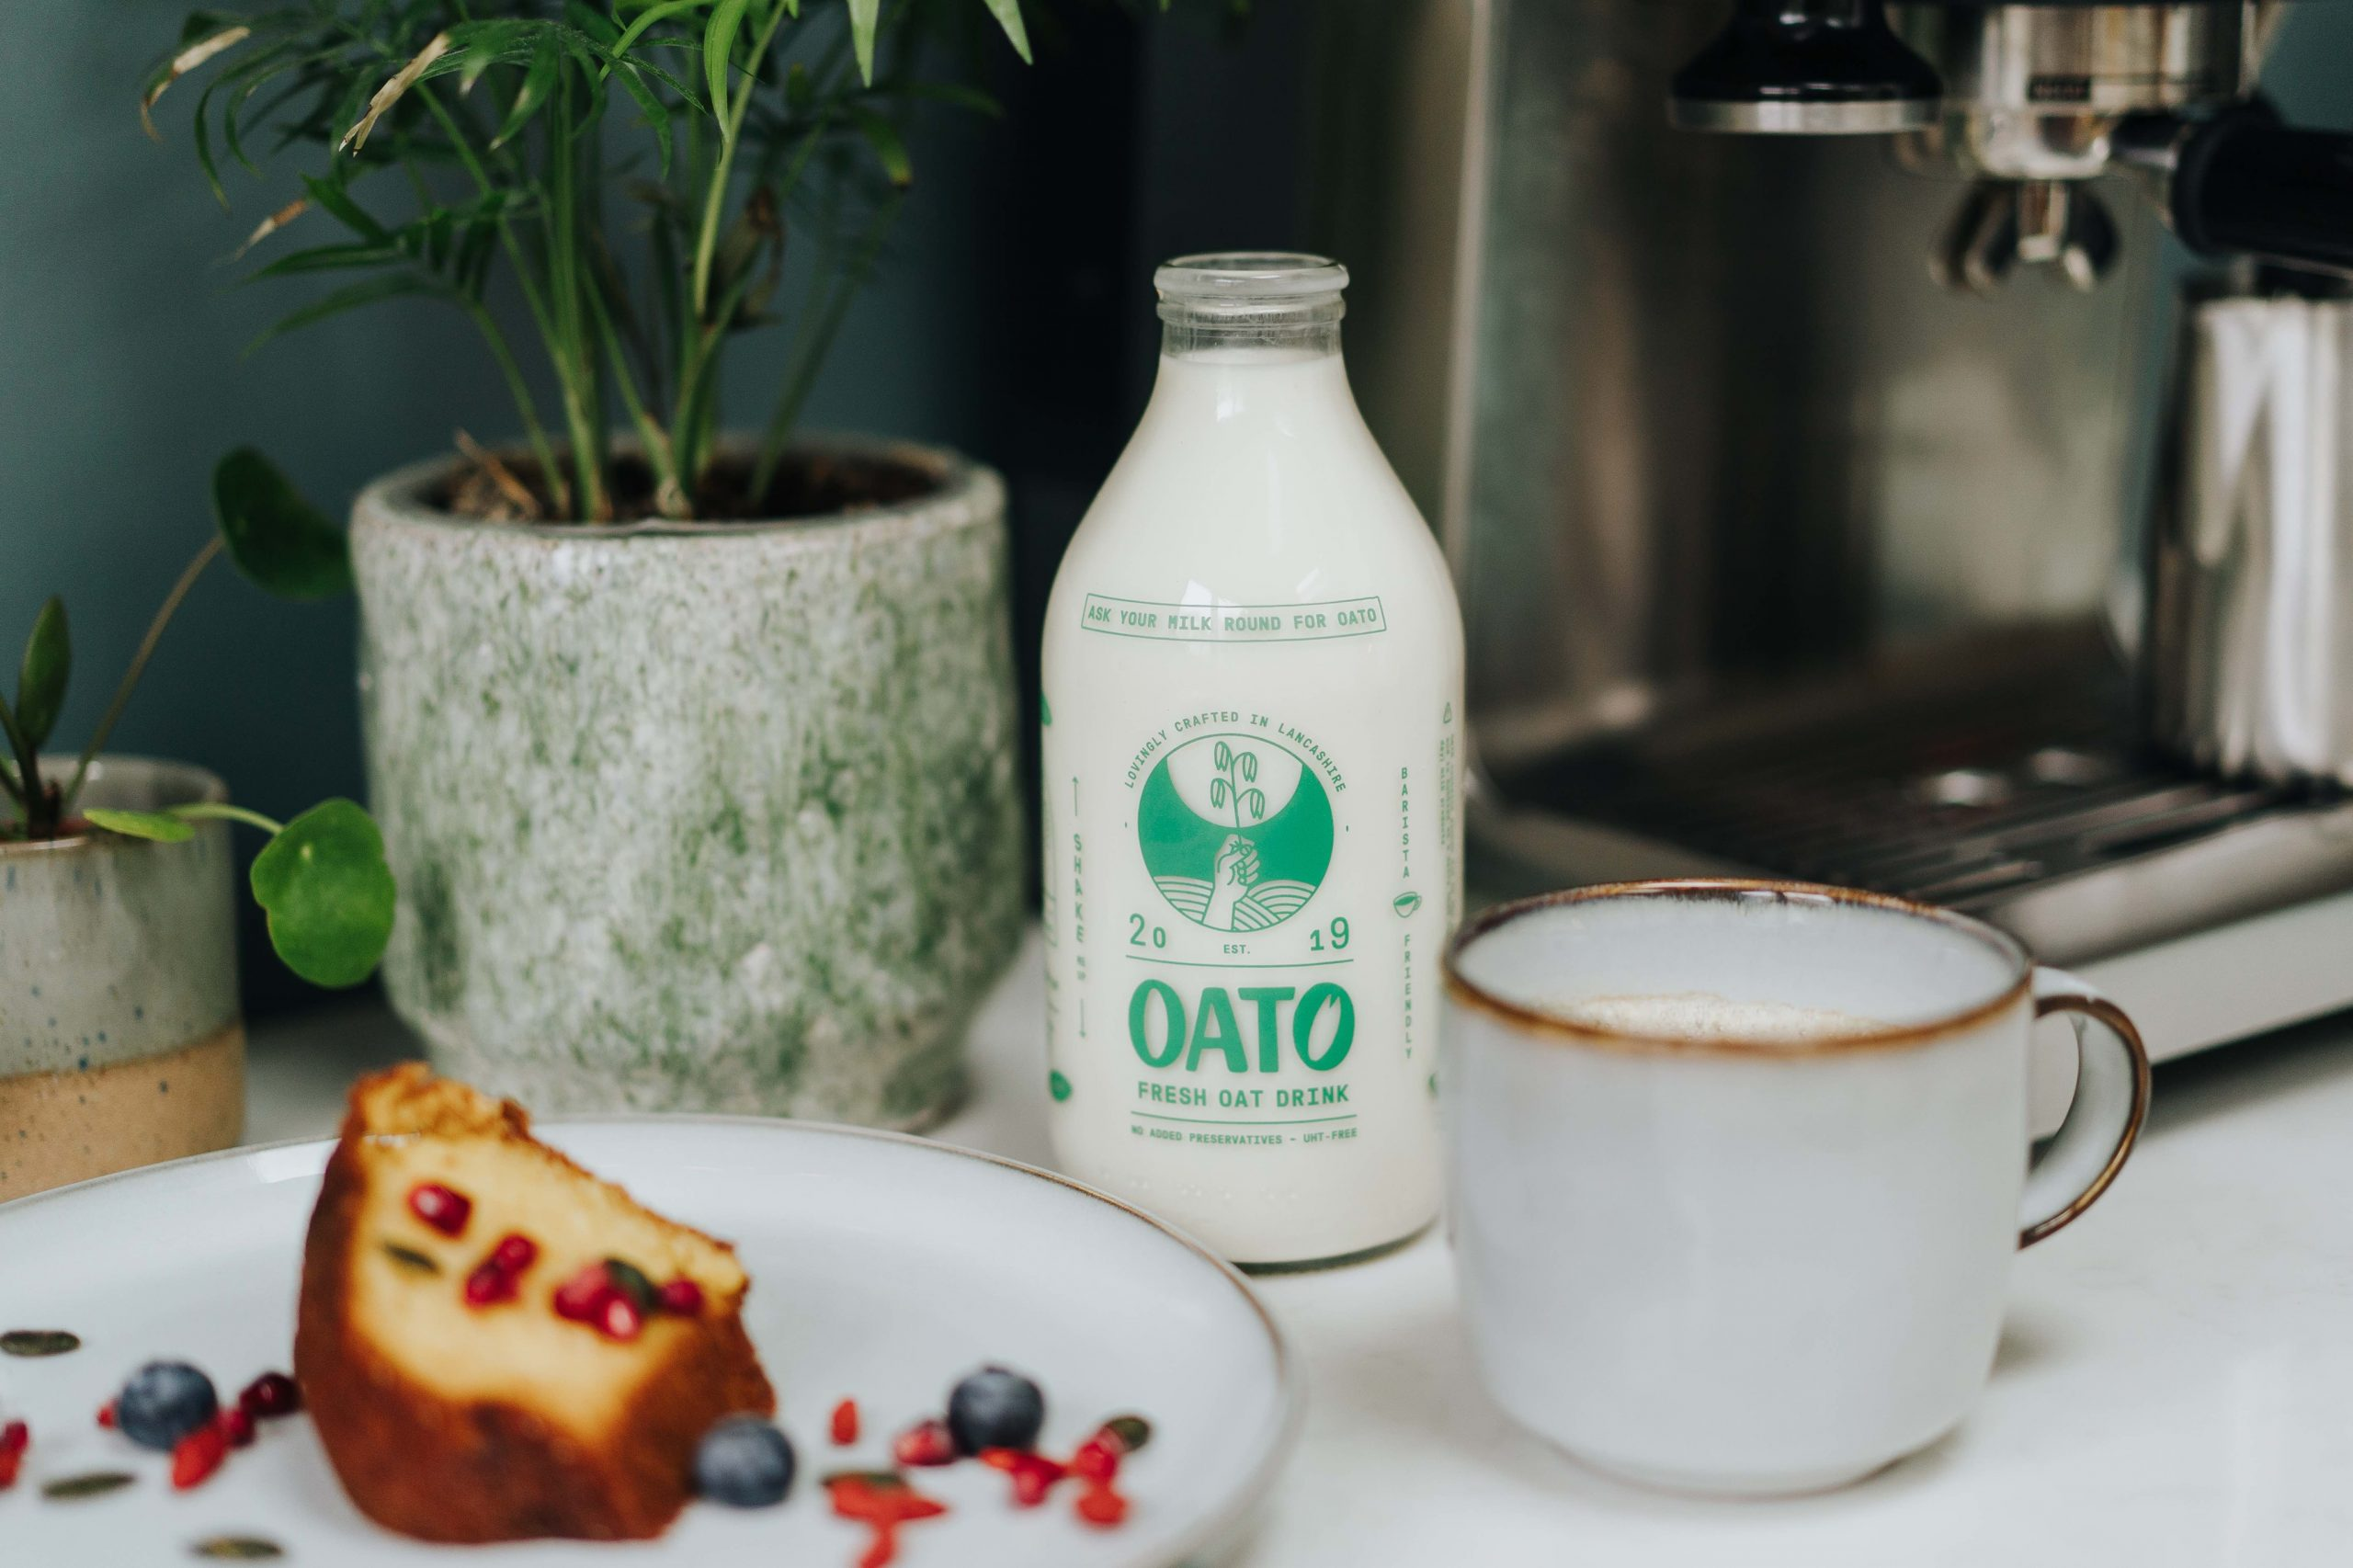 Oato oat milk and cake and tea